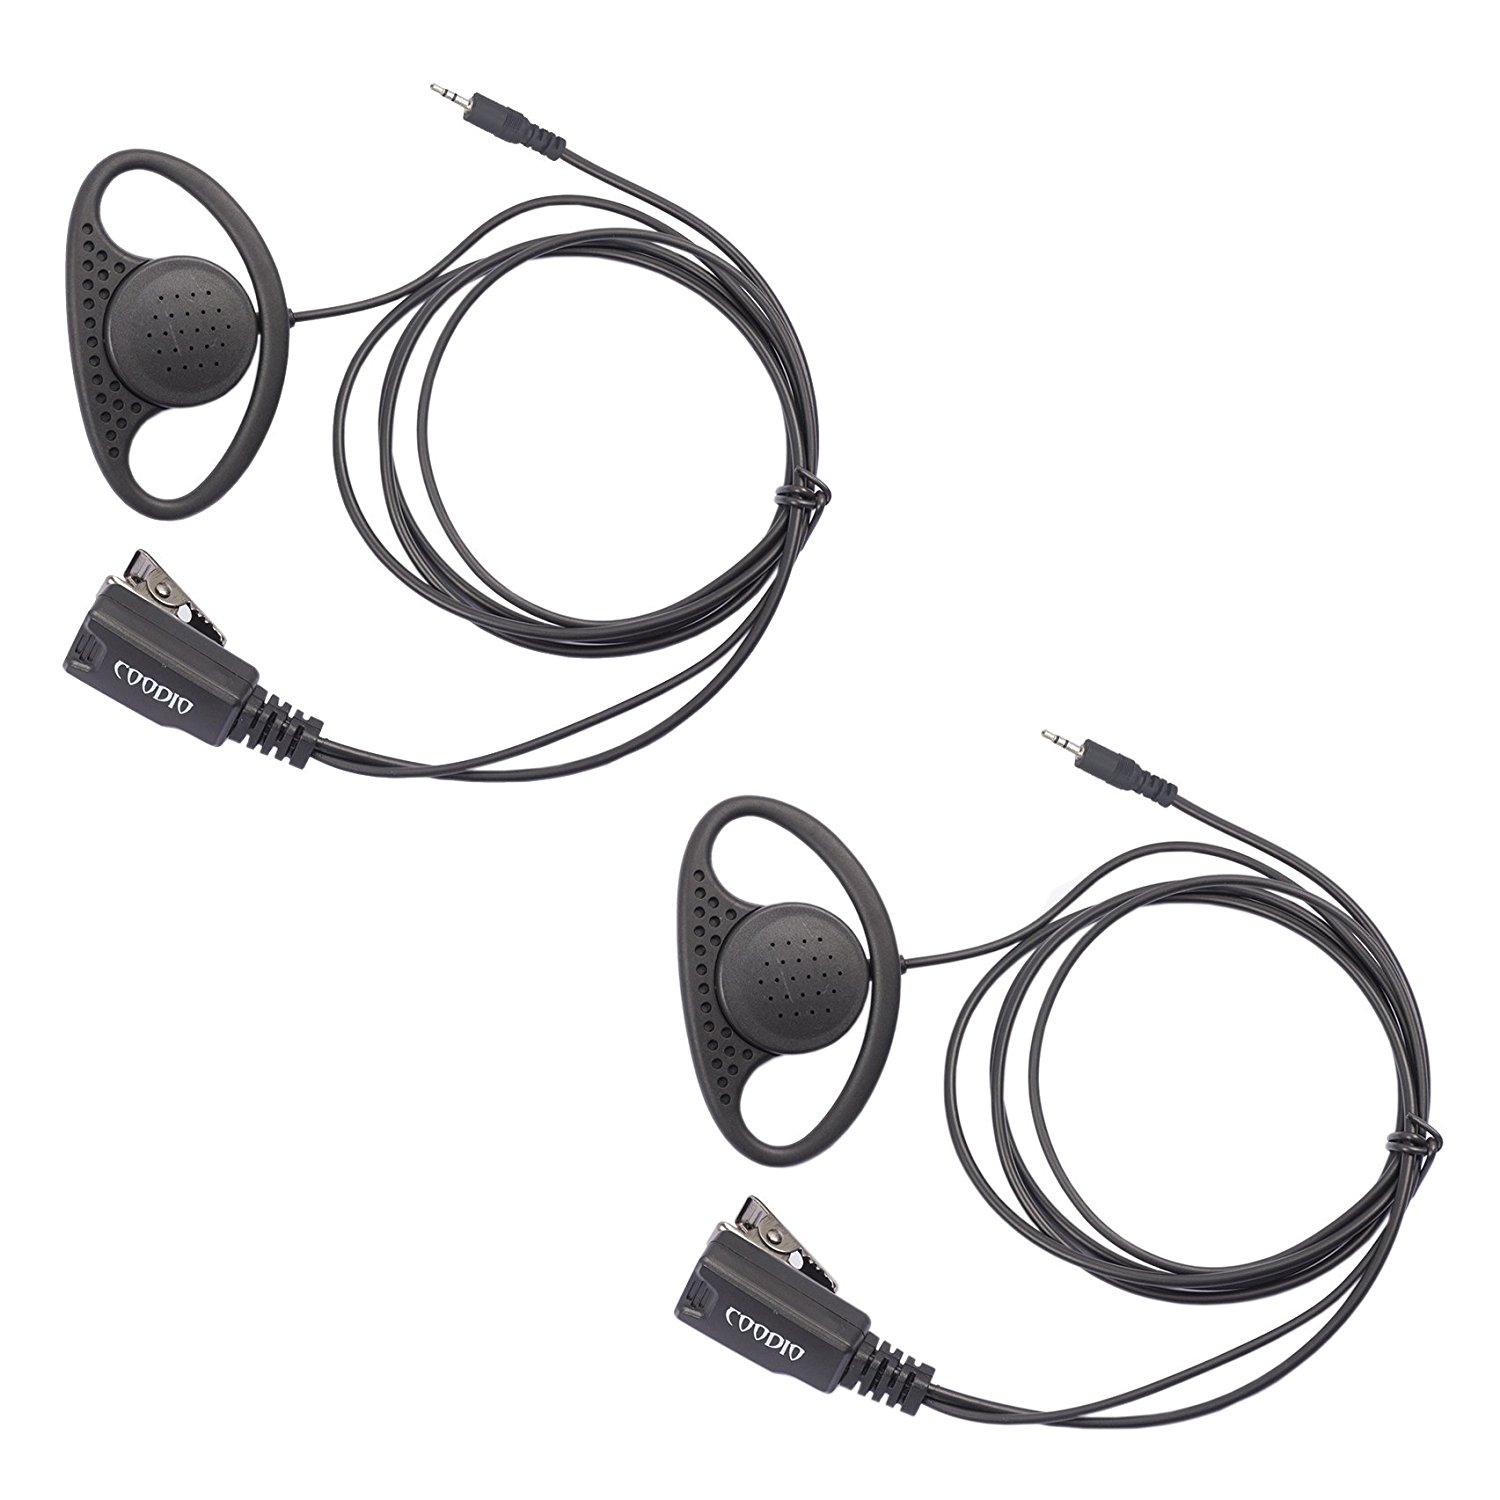 Lot 2 X Coodio Dring Earpiece Police Security Headset Inline Ptt